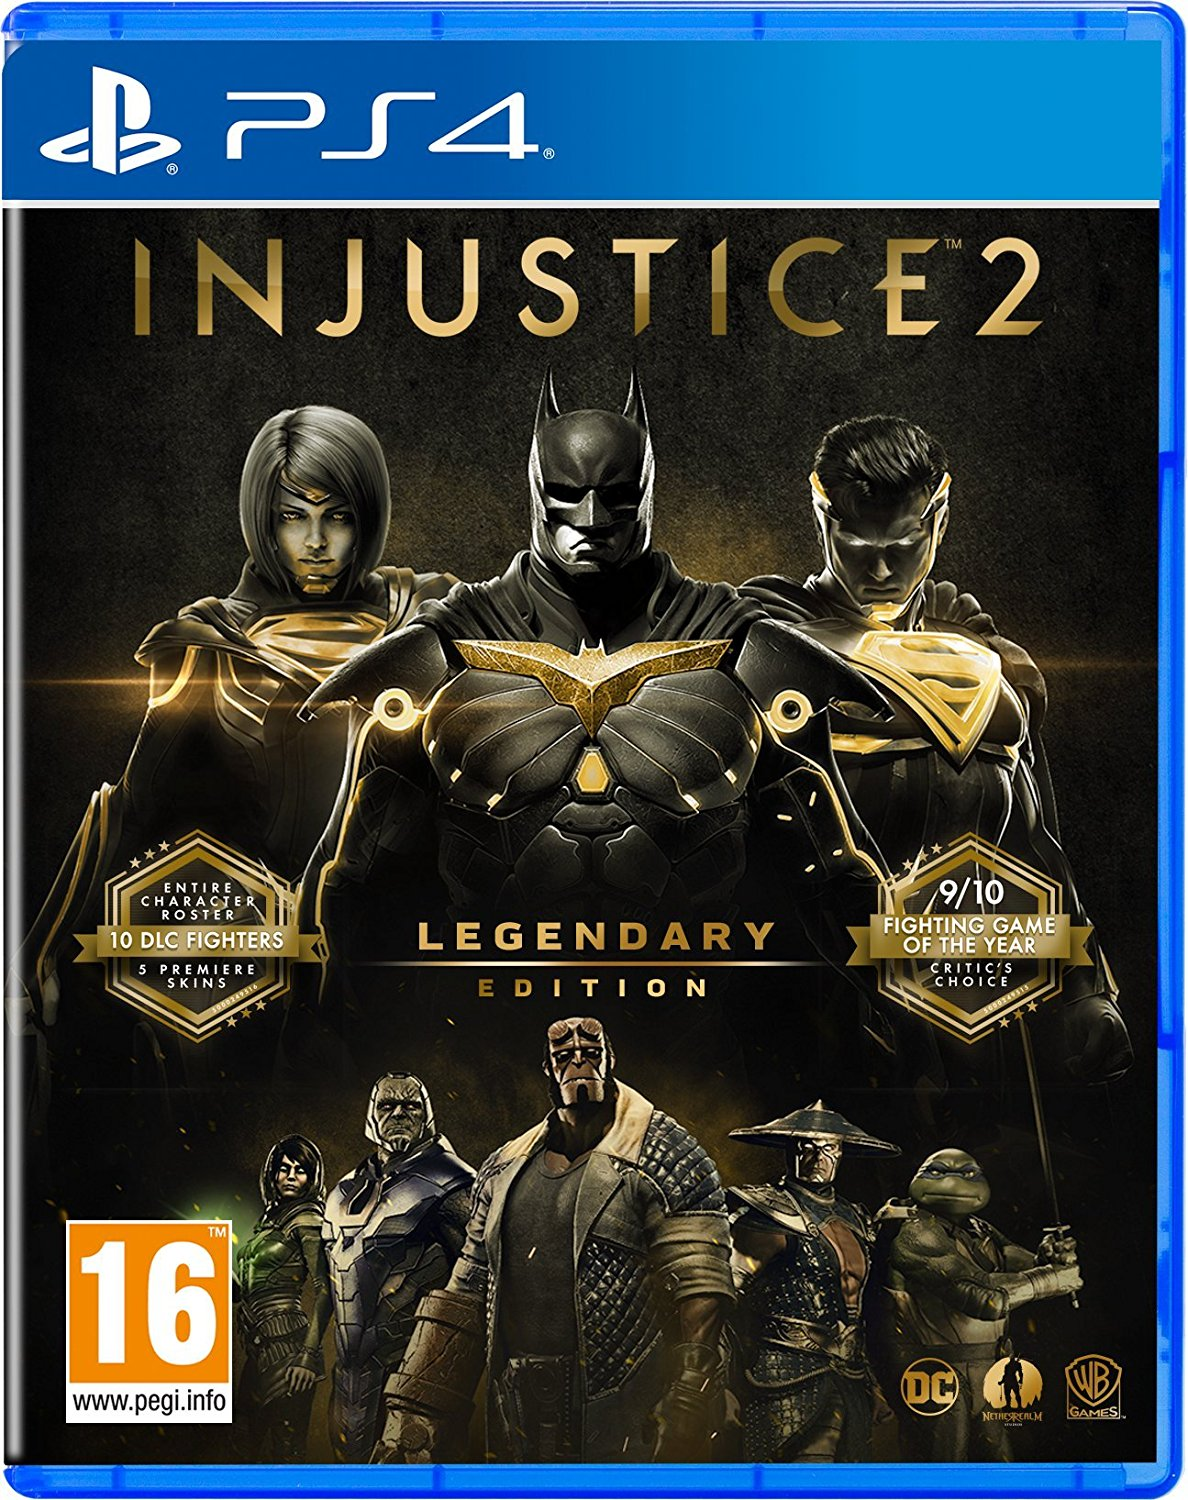 Injustice 2 - Legendary Edition PS4, PS4, DVDMEGASTORE, DVDMEGASTORE